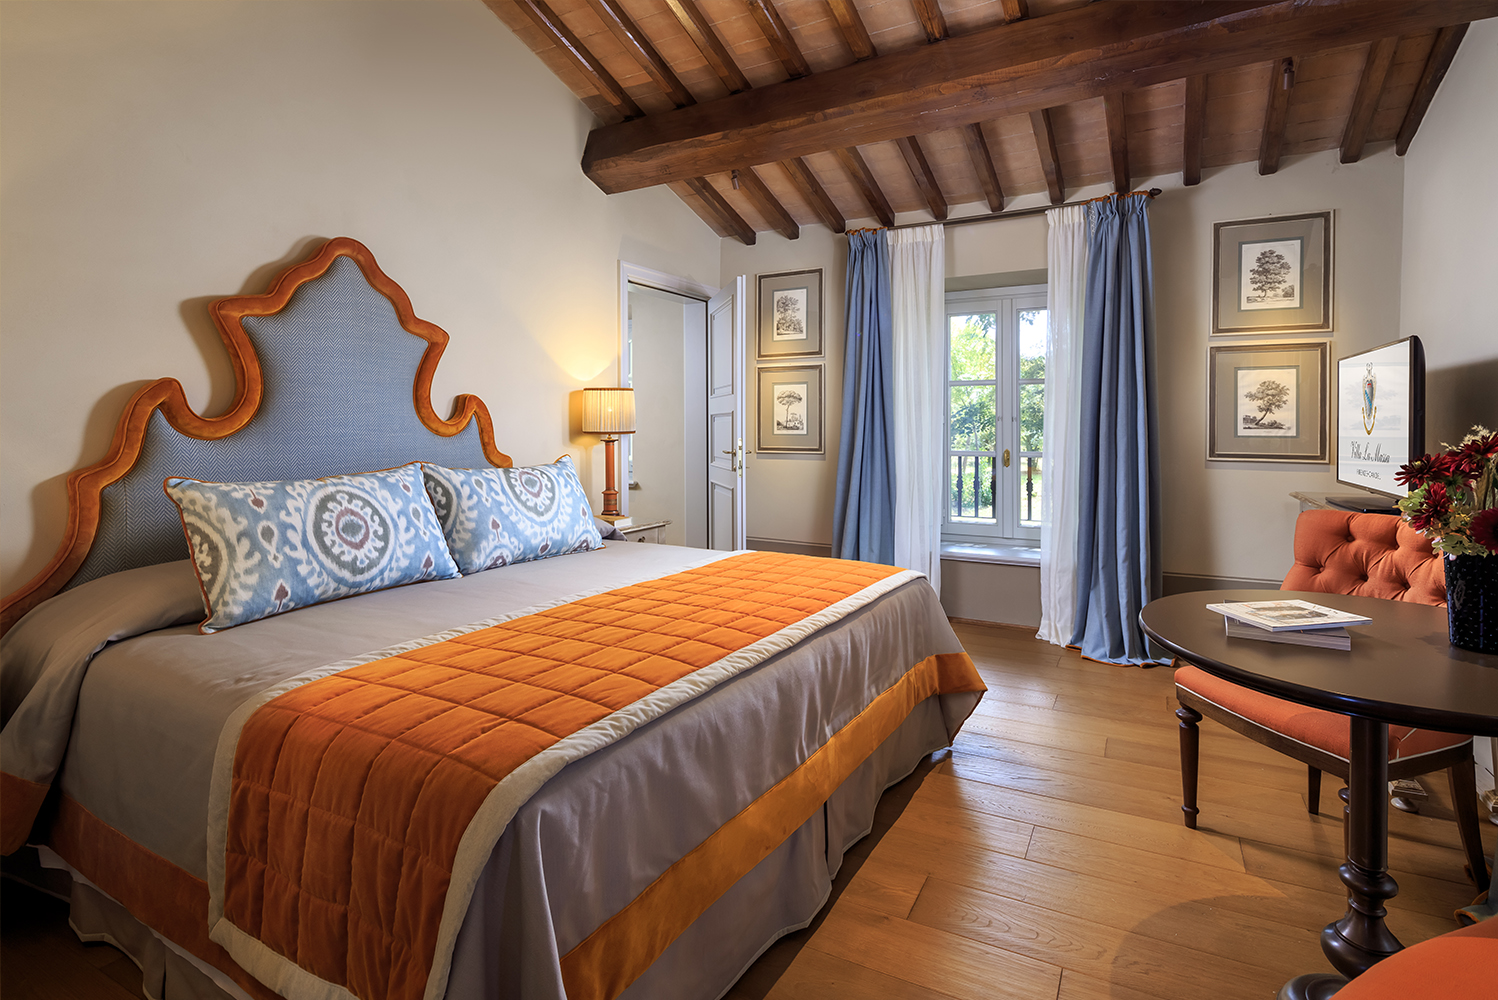 The décor is classically Tuscan, and the furnishings are handcrafted by local artisans.